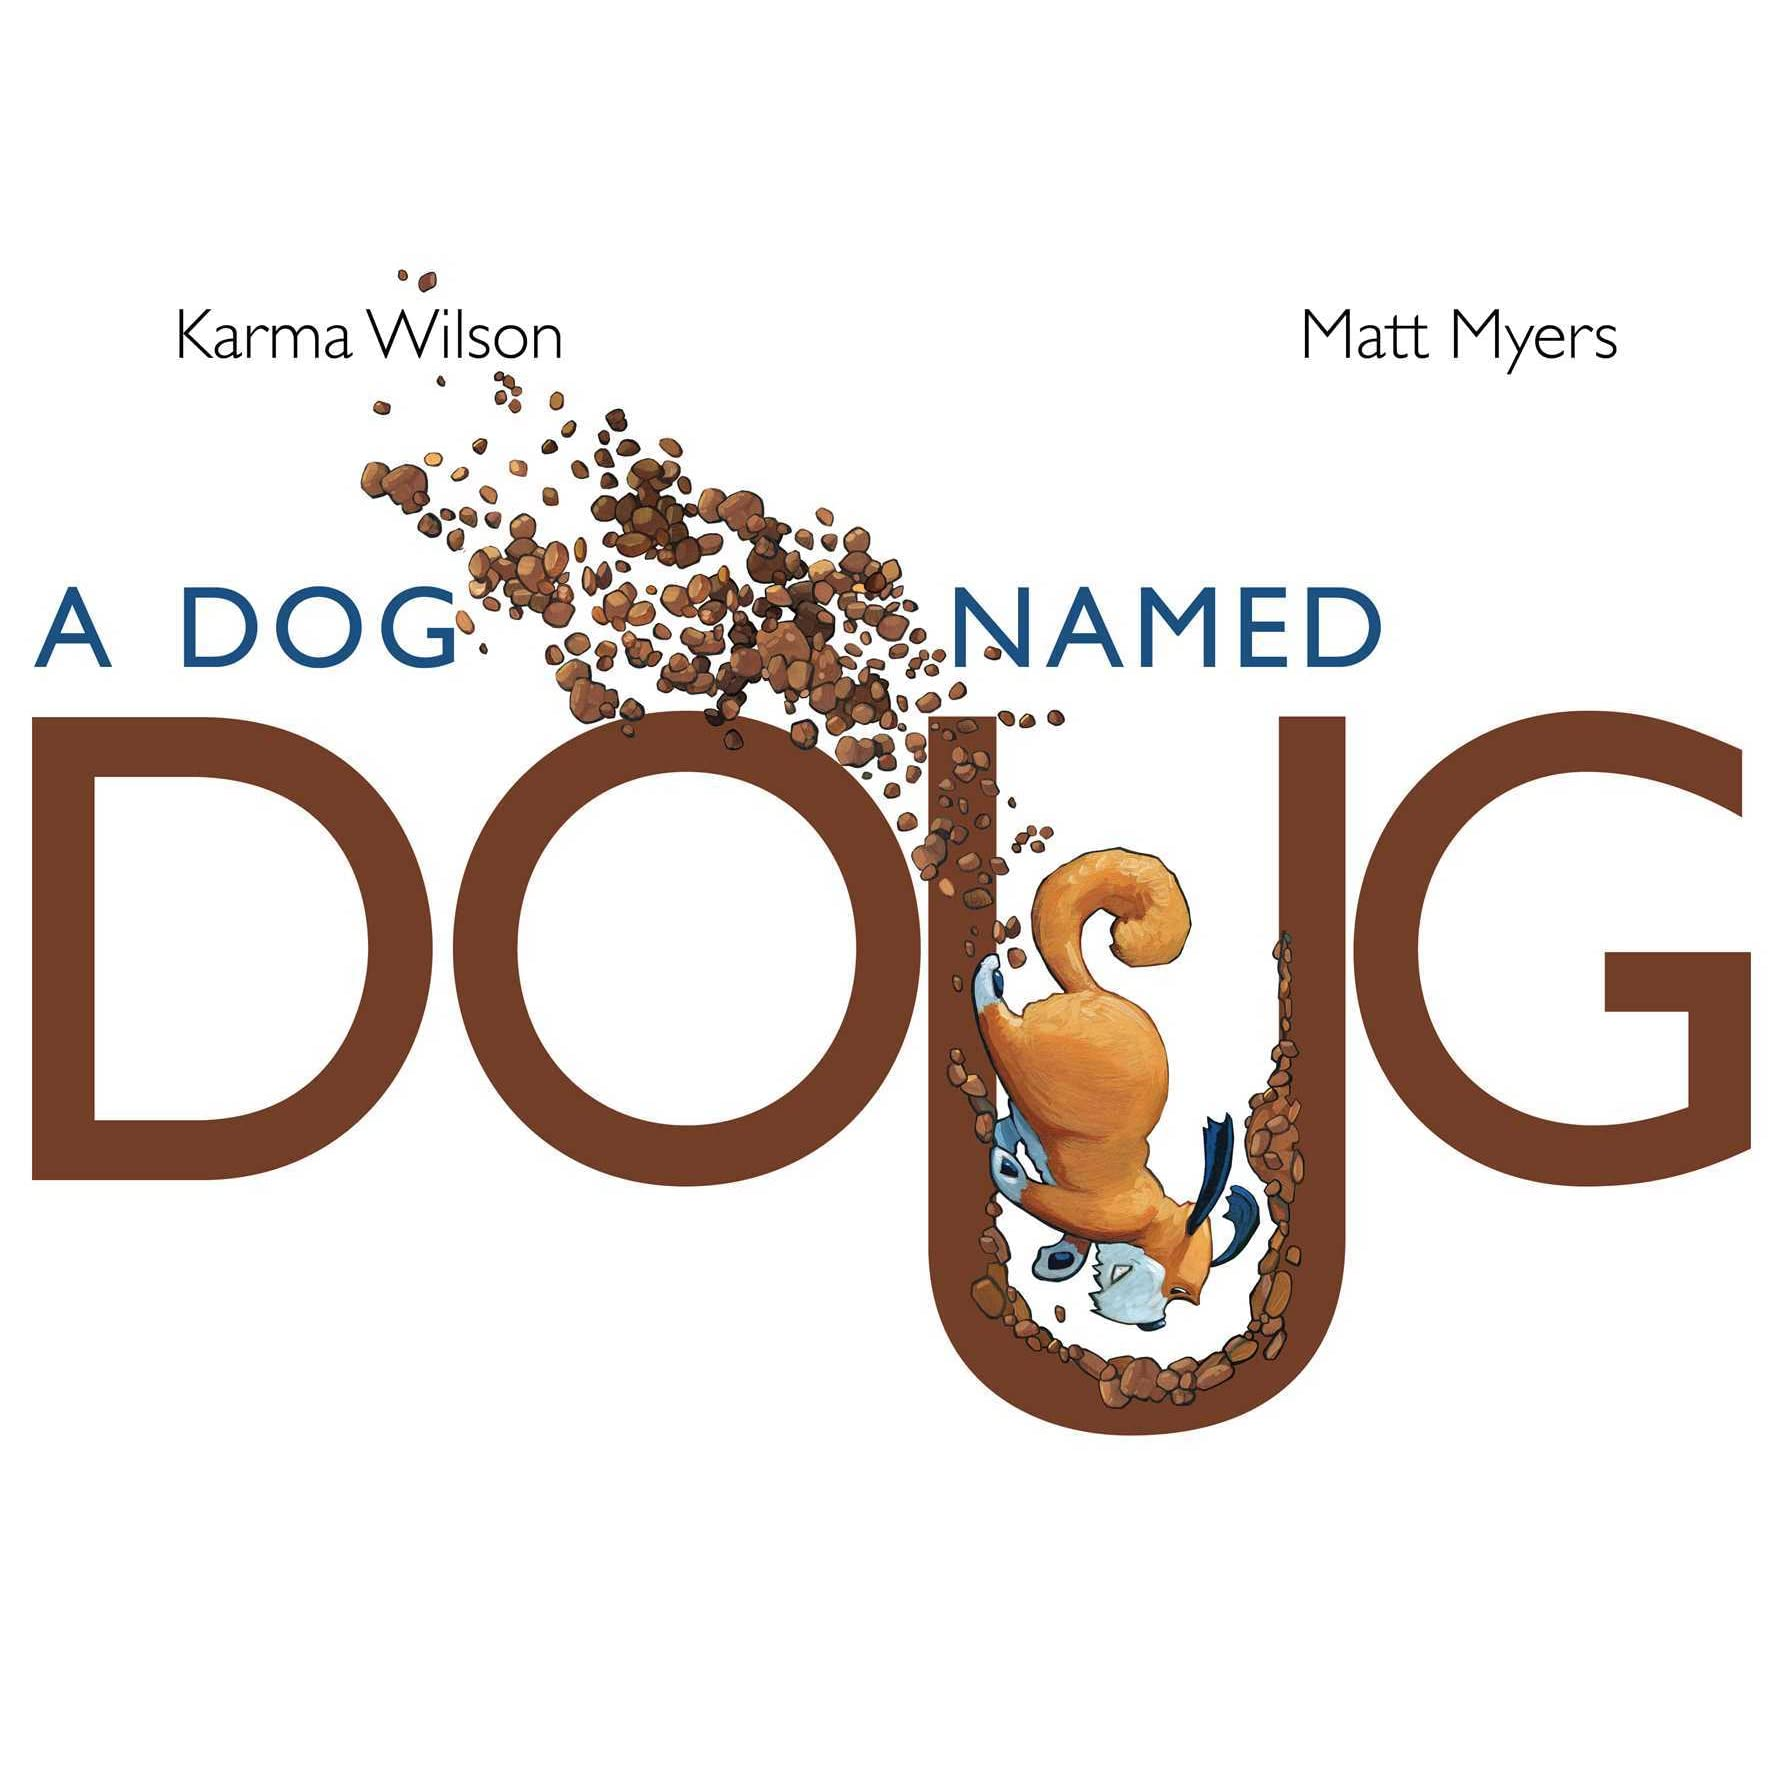 The dog stars goodreads giveaways